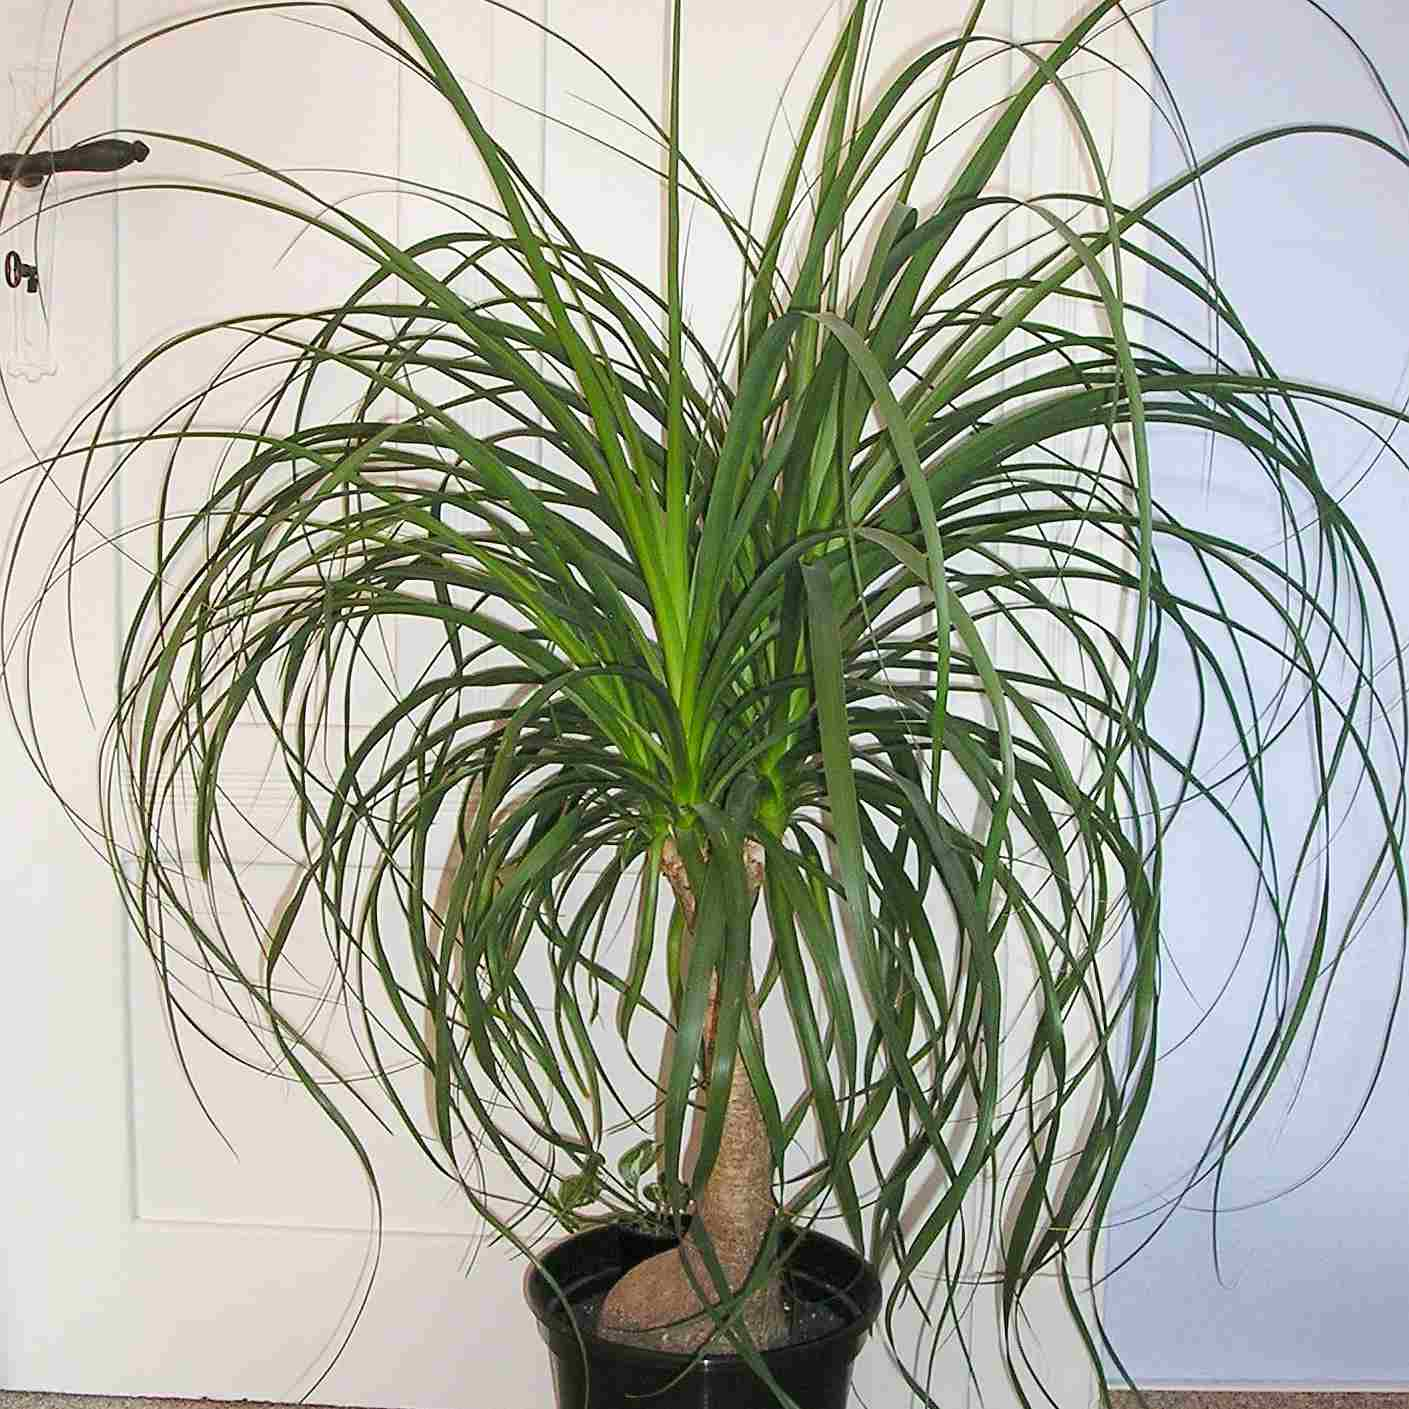 5184571233_c31d2b2ac9_o-5bc3e94a46e0fb002692b97b Palm Tree Indoor House Plant Types on indoor house plant care, tall indoor palm trees types, indoor miniature palm tree, tropical palm trees types, like palm plants types, indoor bonsai tree types, dracaena house plant types, indoor rubber tree plant, indoor banana tree plant care, indoor dragon tree house plant, indoor plant pots, indoor house plant names, bamboo palm trees types, common house plant types, indoor palm tree problems, indoor dragon tree plants care, indoor palm tree identification guide, indoor tree areca palm, indoor house trees identification, fan palm trees types,